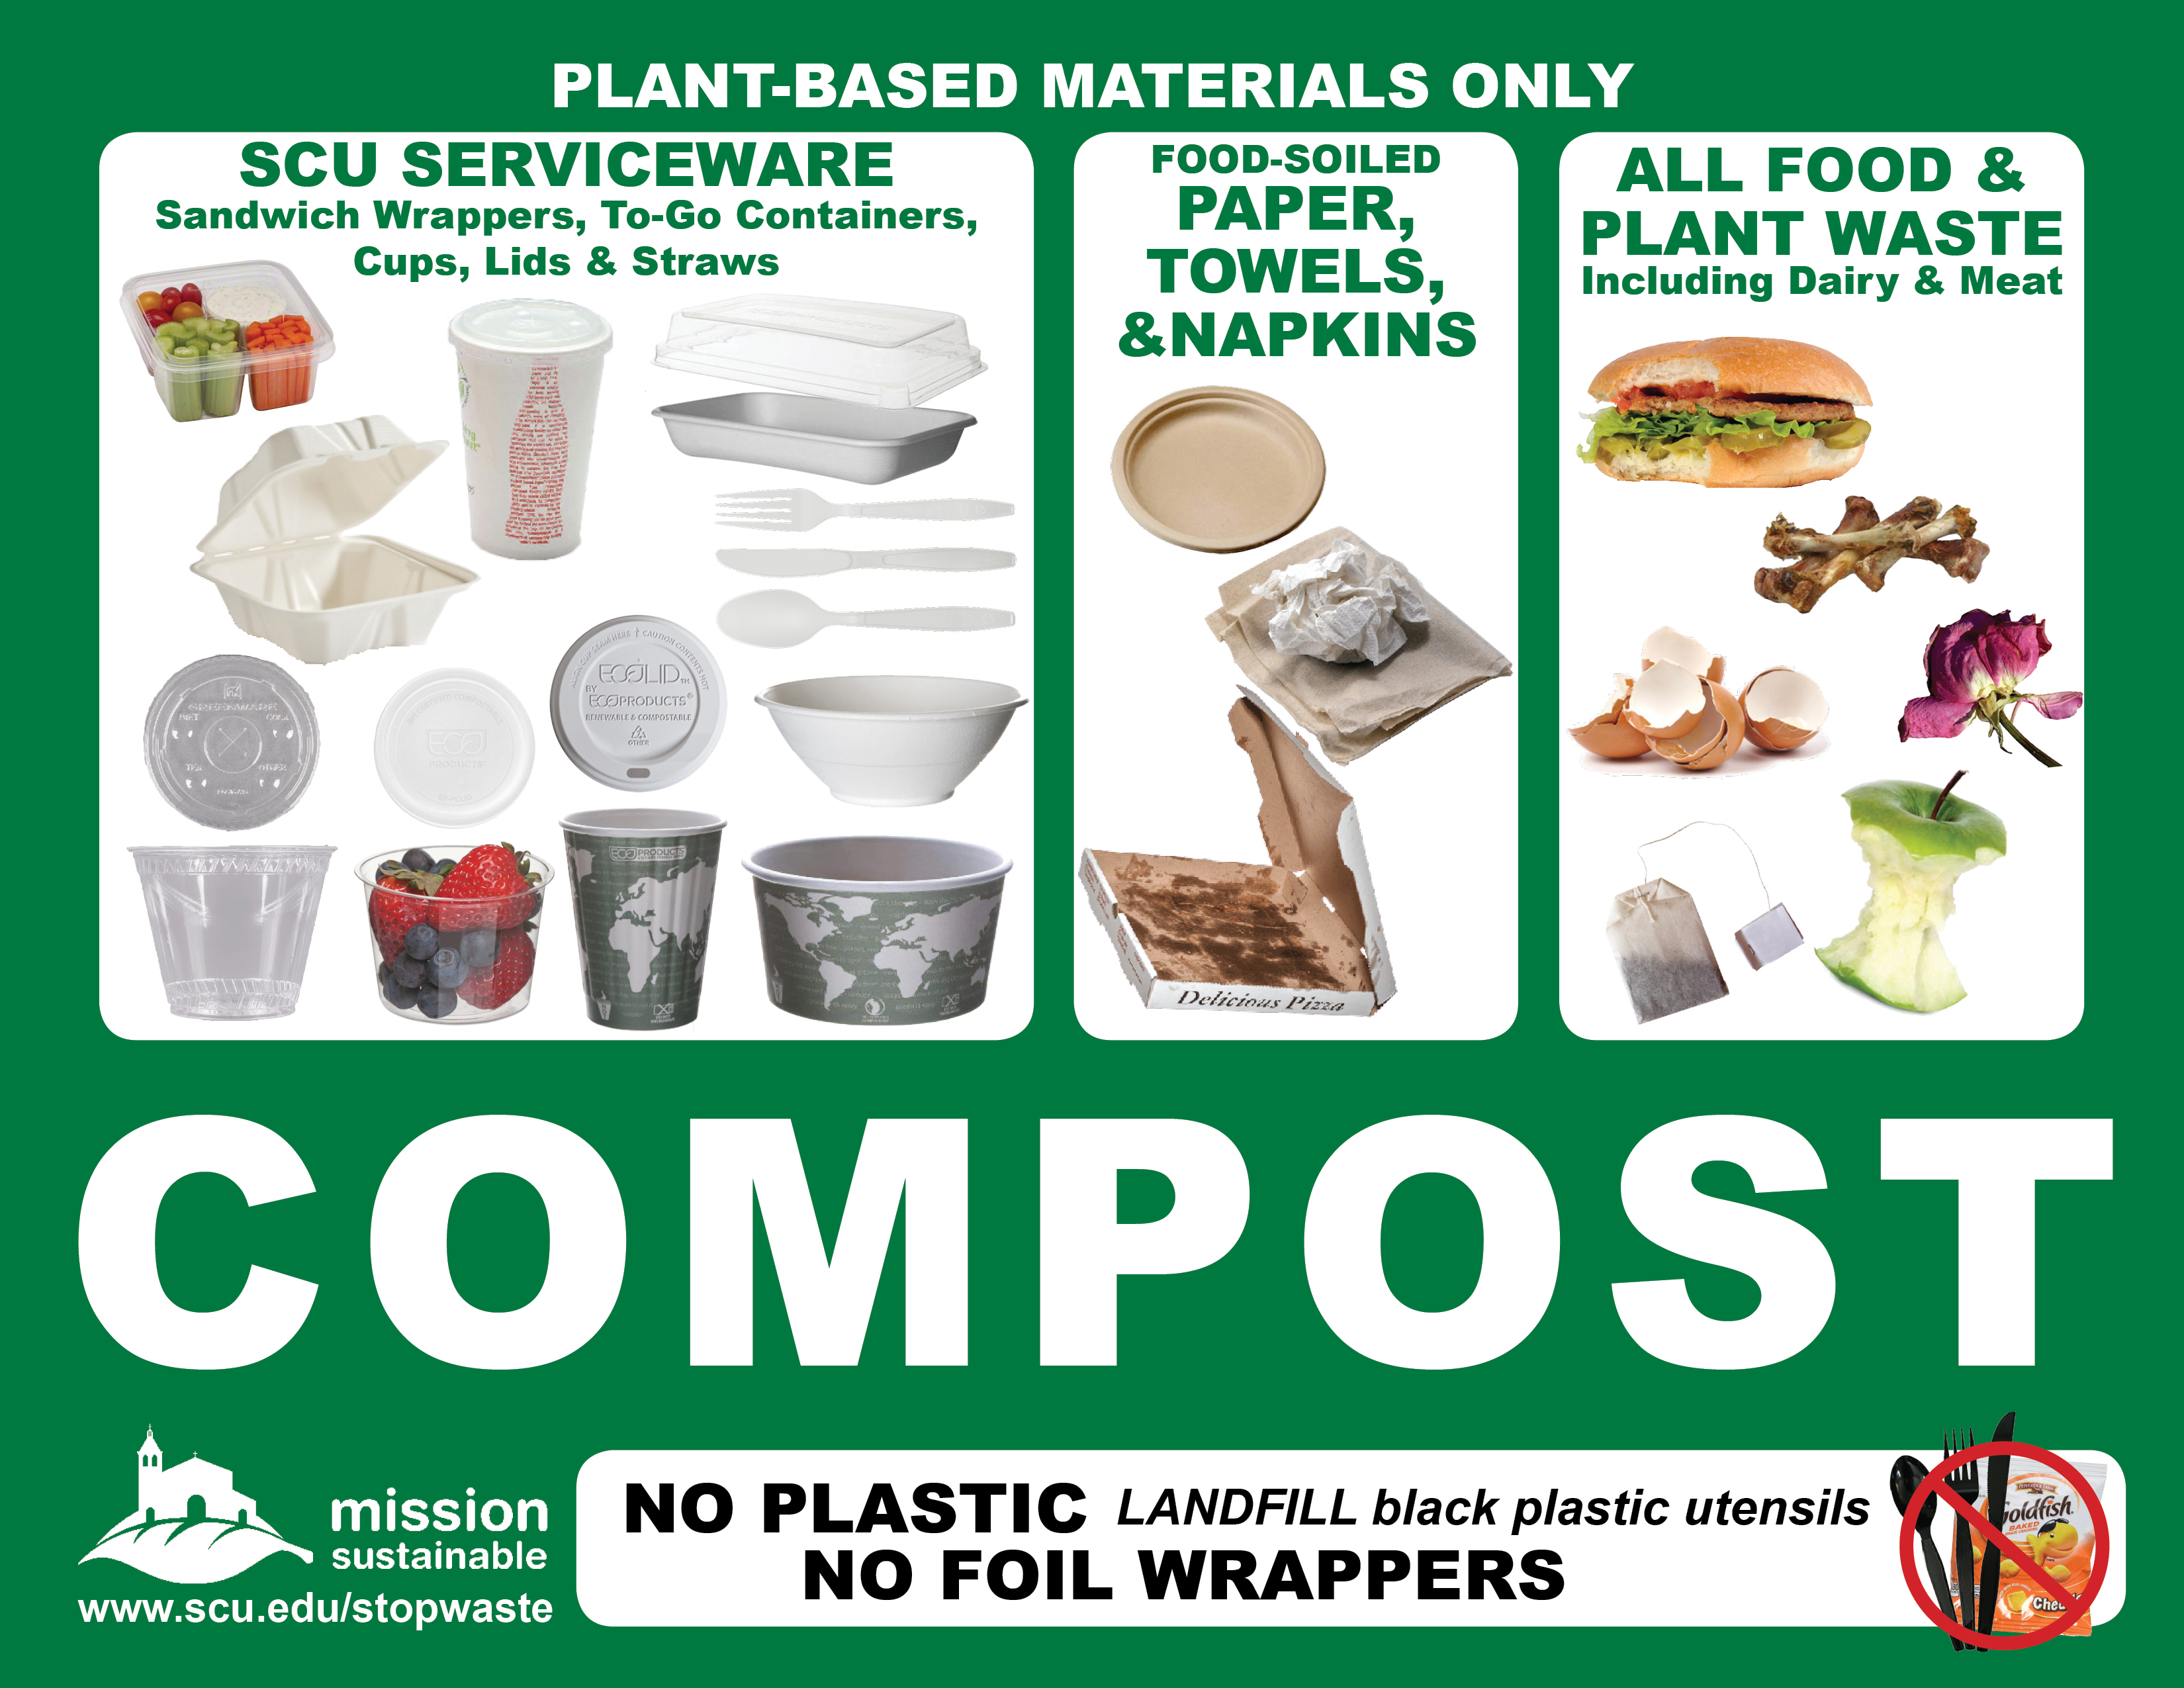 Sign showing food, SCU serviceware, and napkins that can be composted - Image of items that can be composted, such as food, SCU serviceware, and napkins Link to file